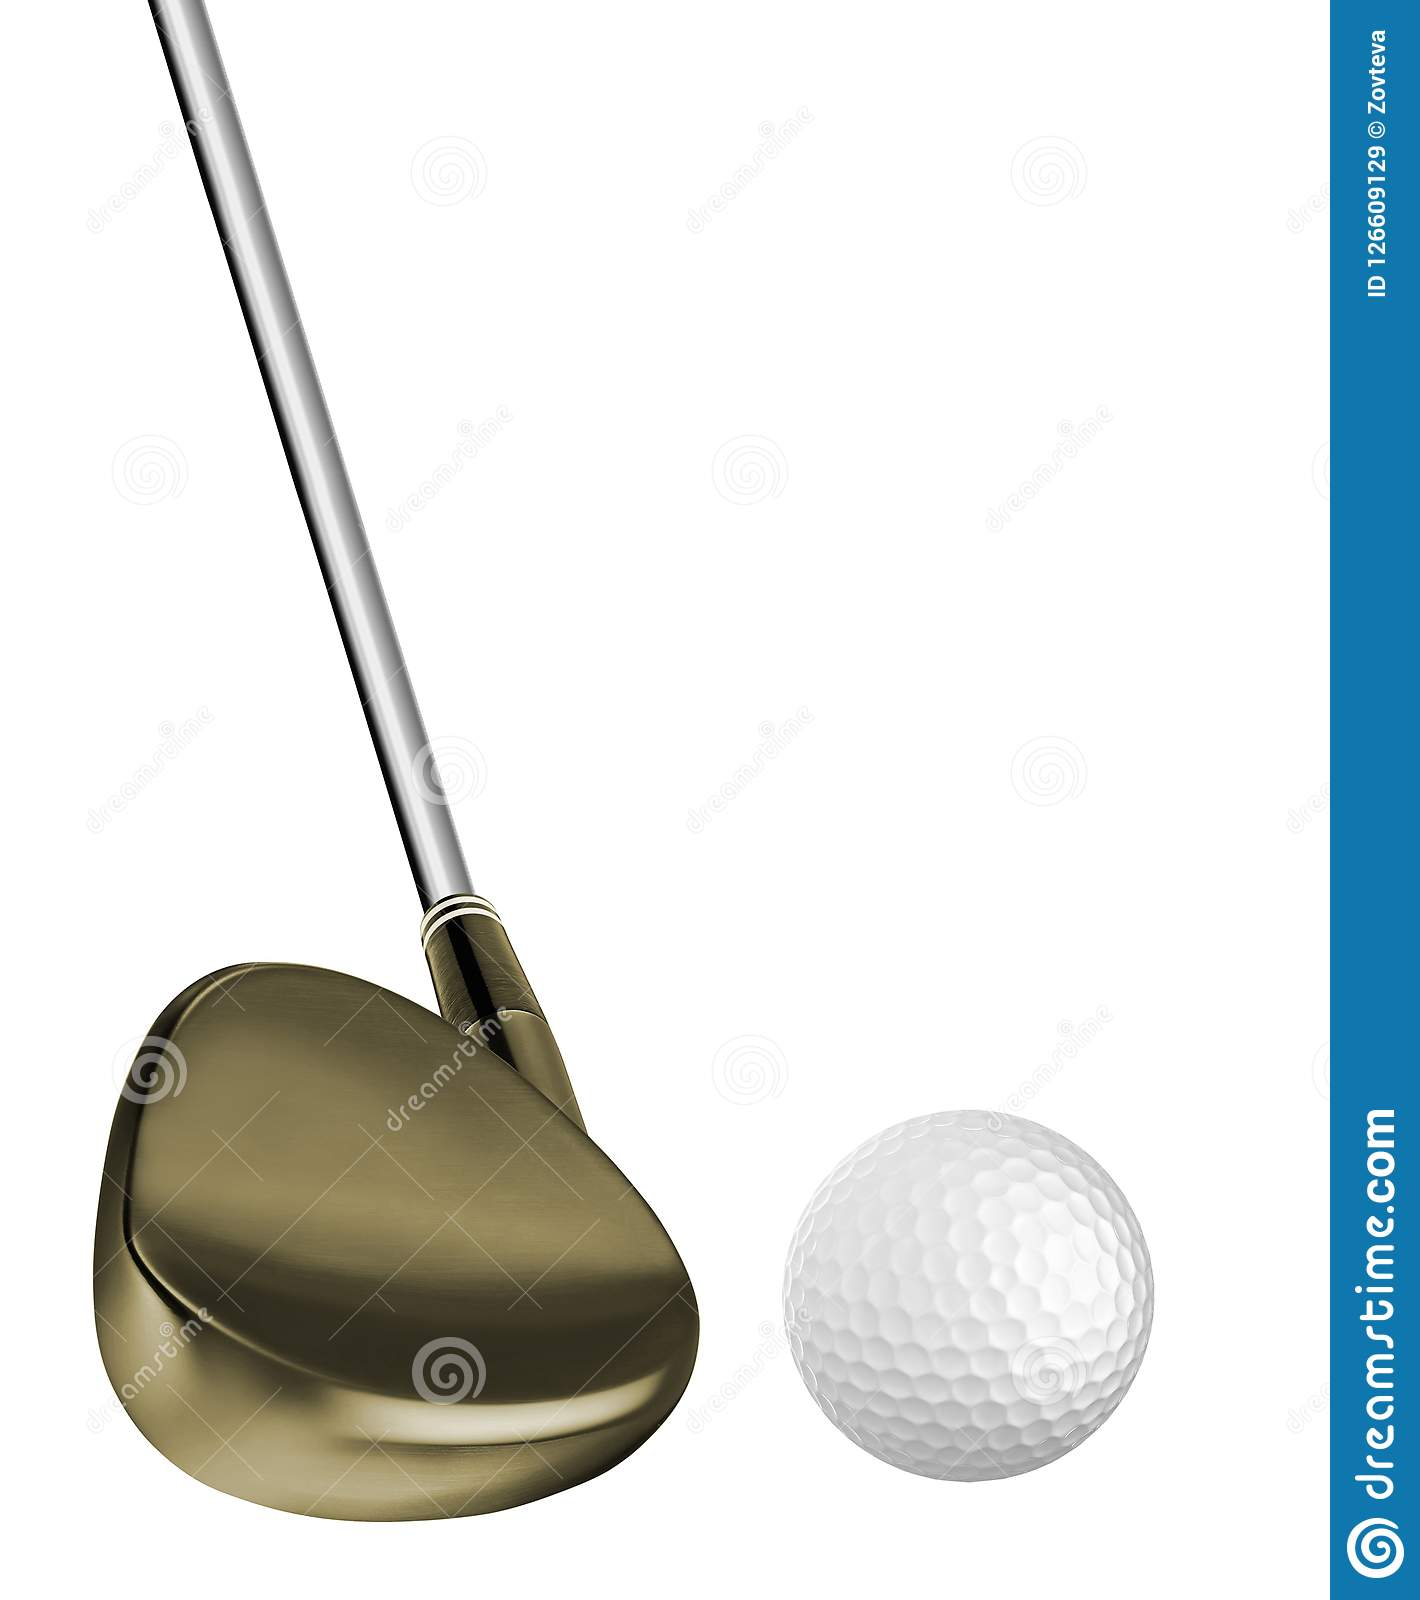 Golf ball and a golf club